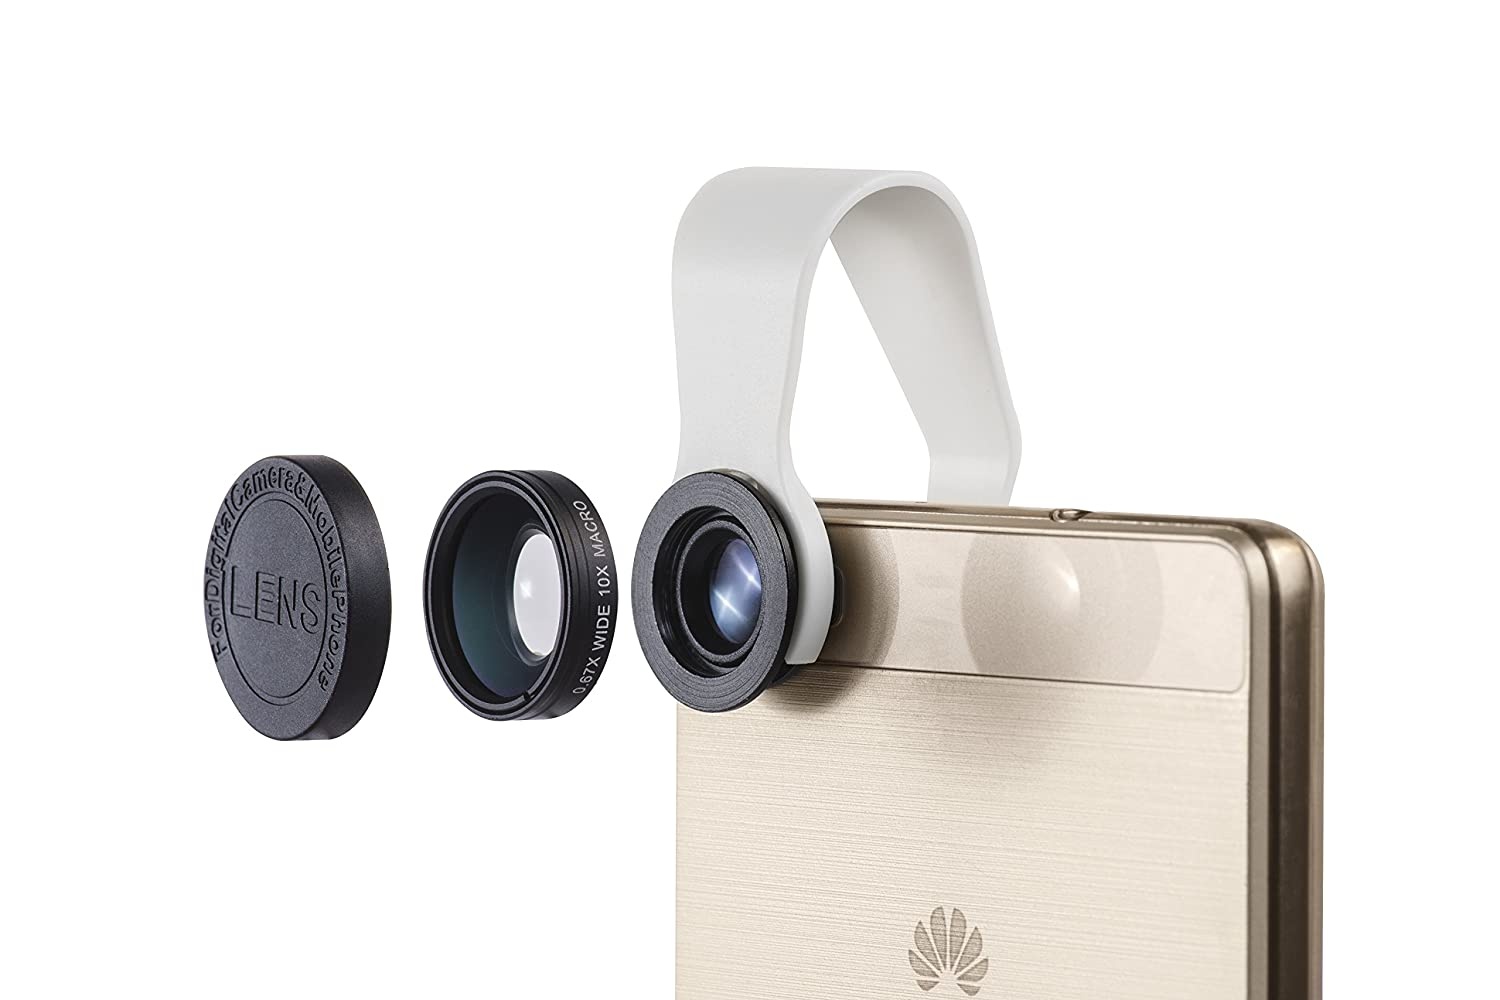 Alternative to Olloclip Google Phones Macro and Wideangle lens Pocket Lens iPhone Camera Lens 2-in-1 Samsung iPads Comes With Waterproof Pouch Fits All iPhones